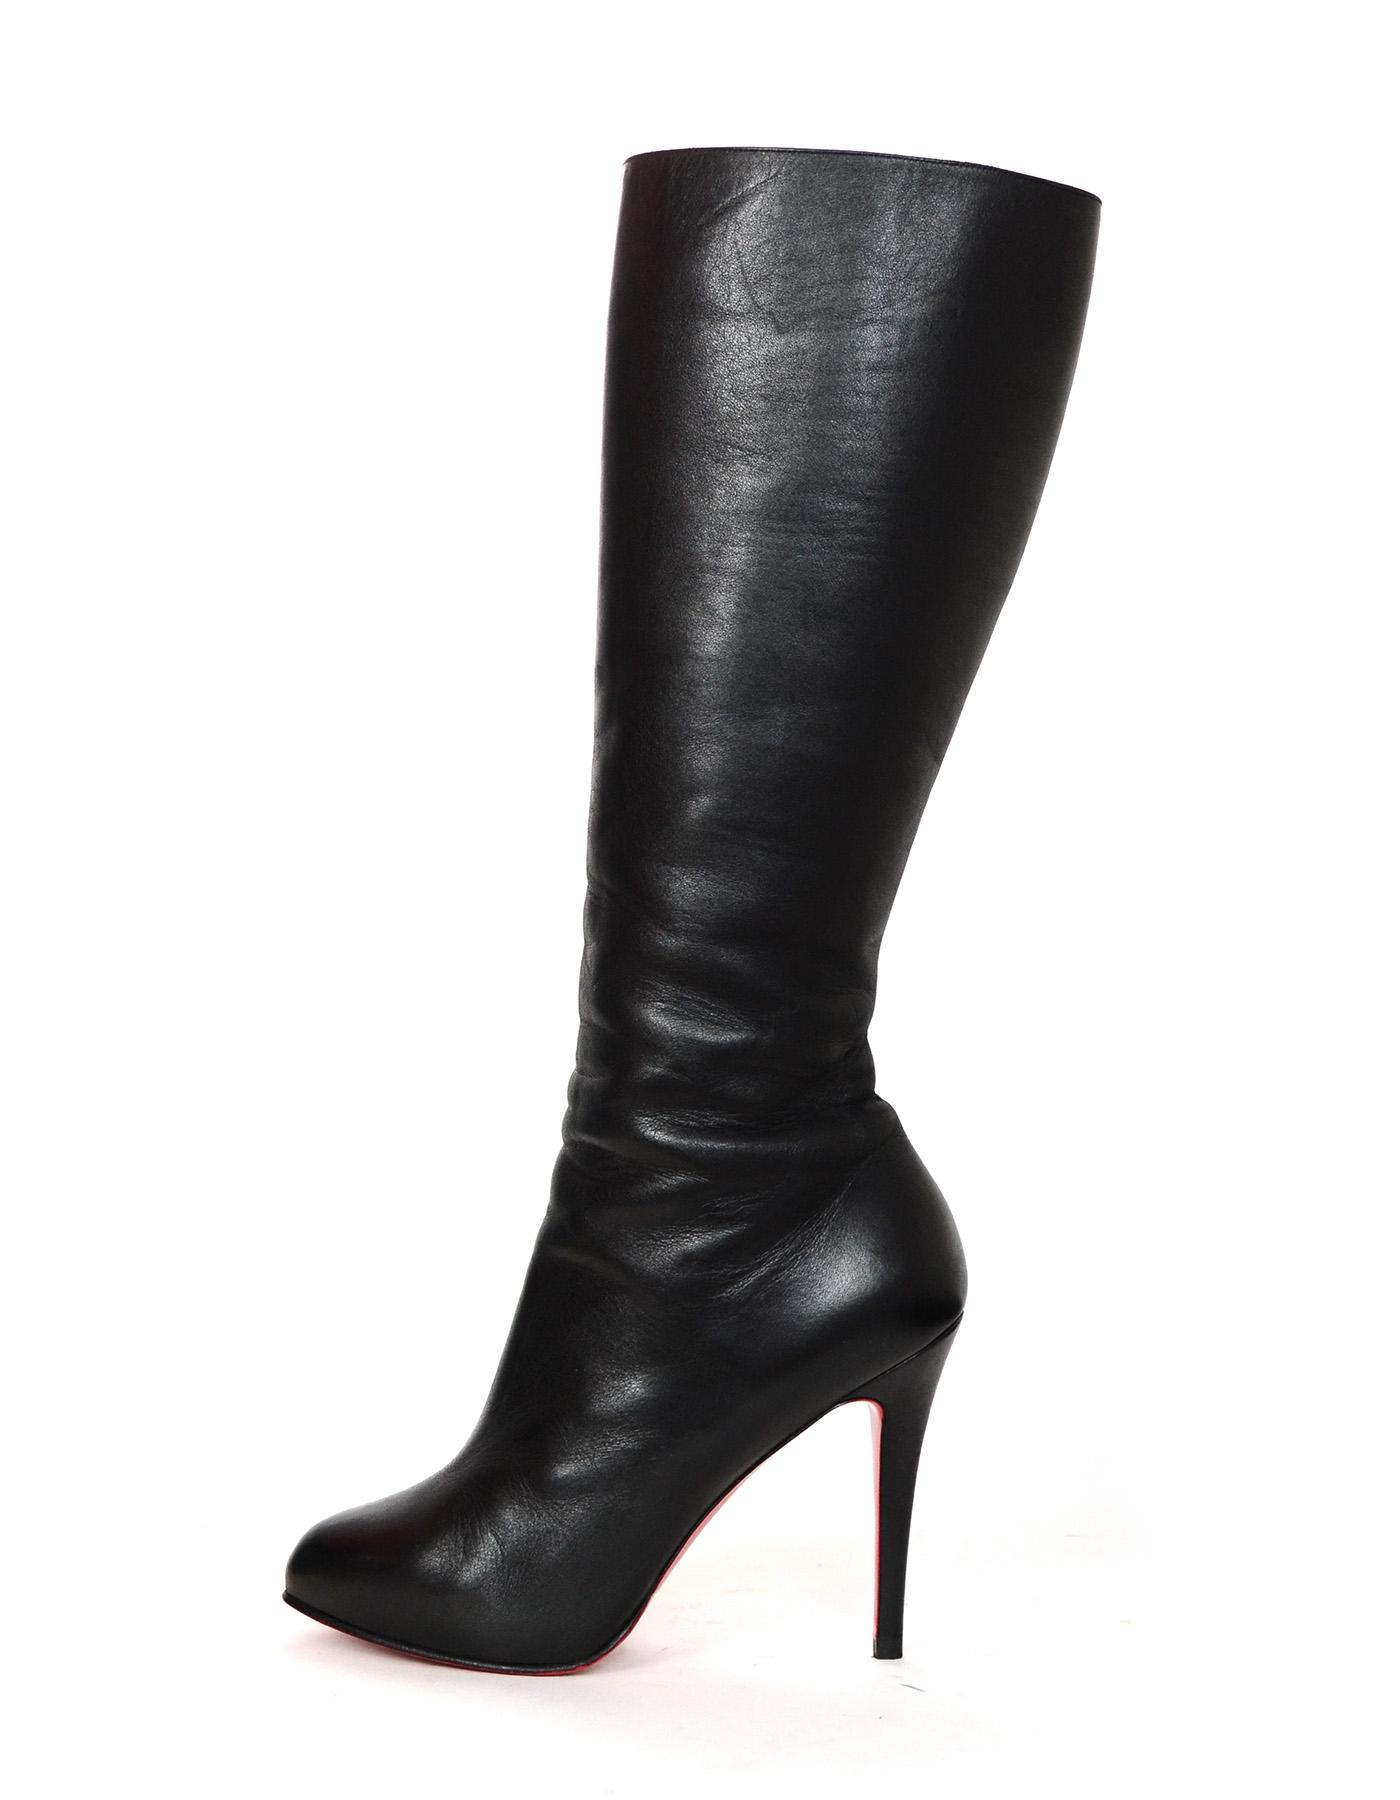 Christian Louboutin Black Leather Ginevra 120 Boots/Booties Size EU 38.5 (Approx. US 8.5) Regular (M, B)